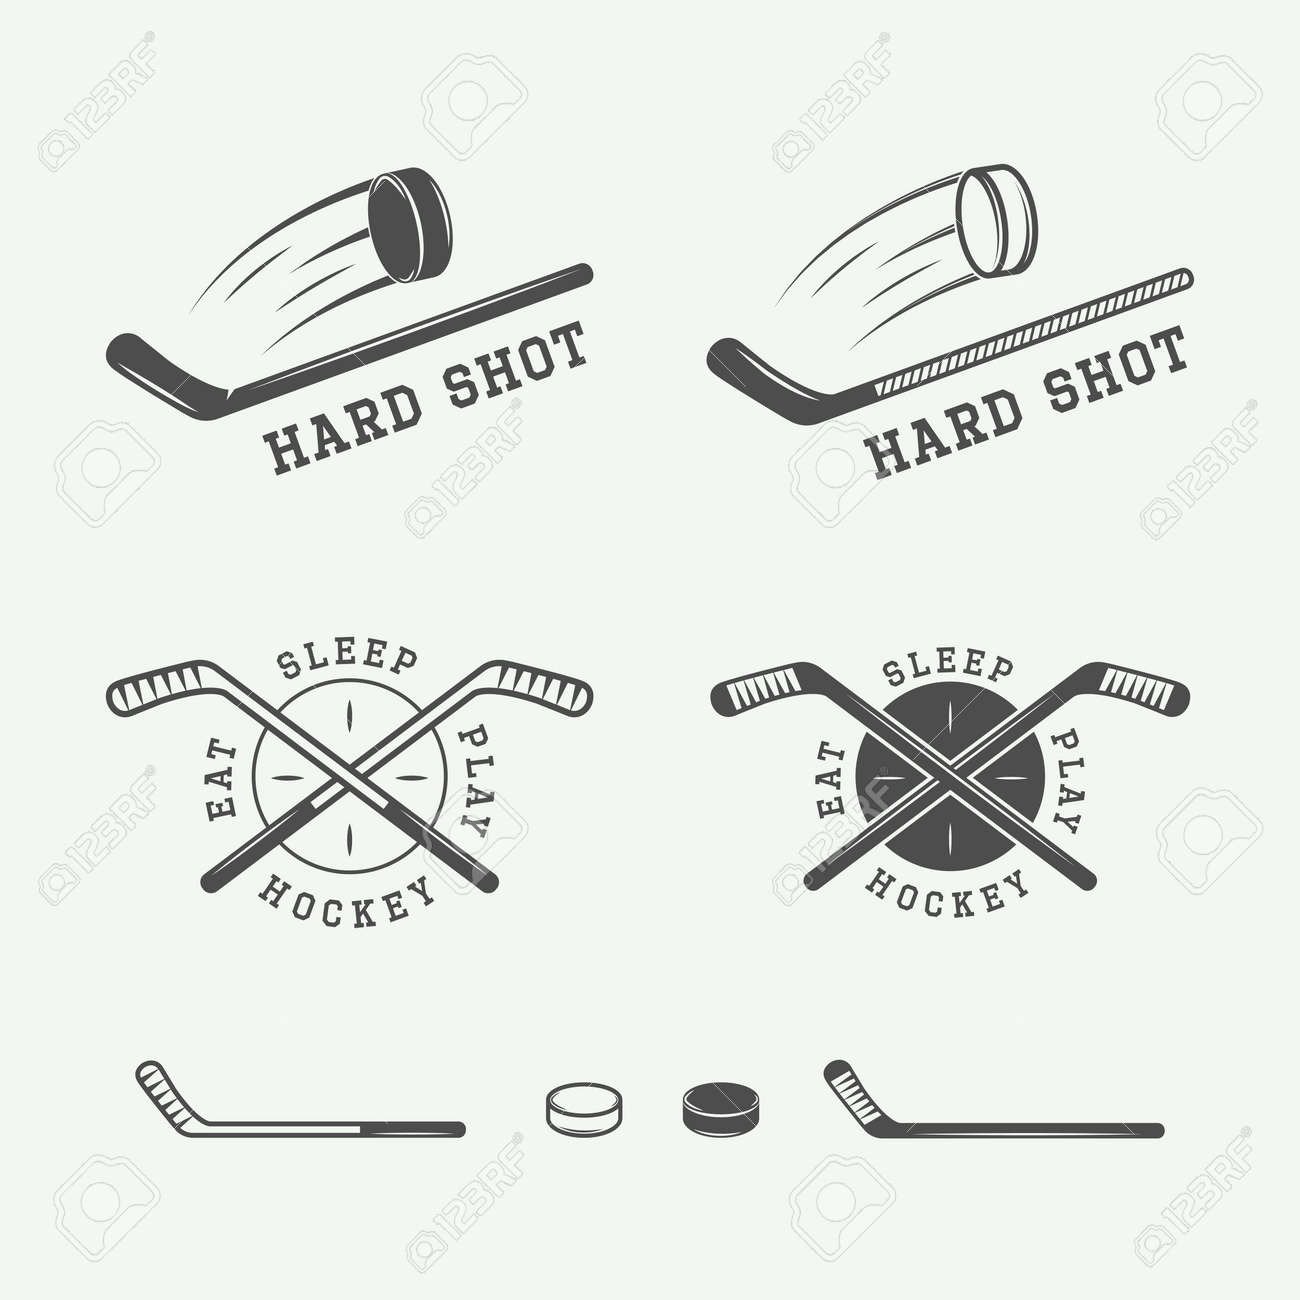 Set of vintage hockey emblems, logos, badges, labels and design